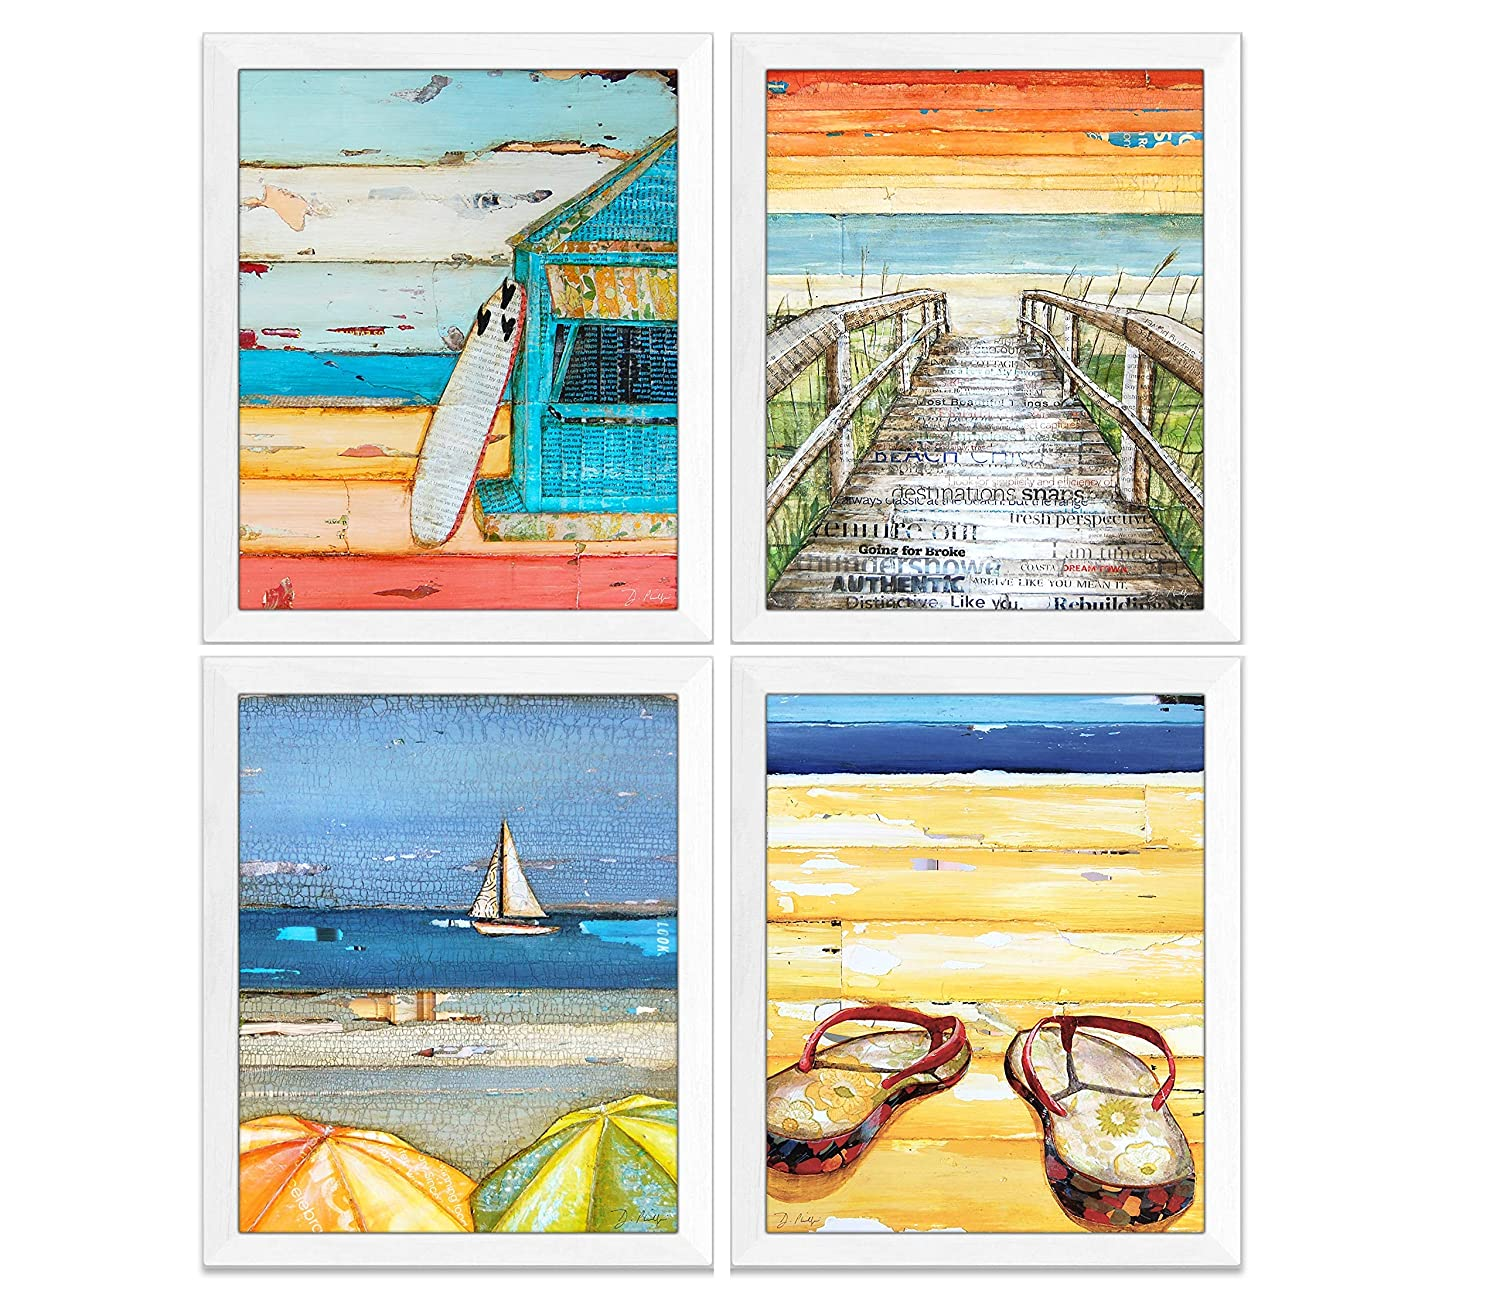 Summer Beach Art Prints, Set of 4 by Danny Phillips, Unframed, Mixed Media Collage Wall Art Decor Posters, 8x10 Inches